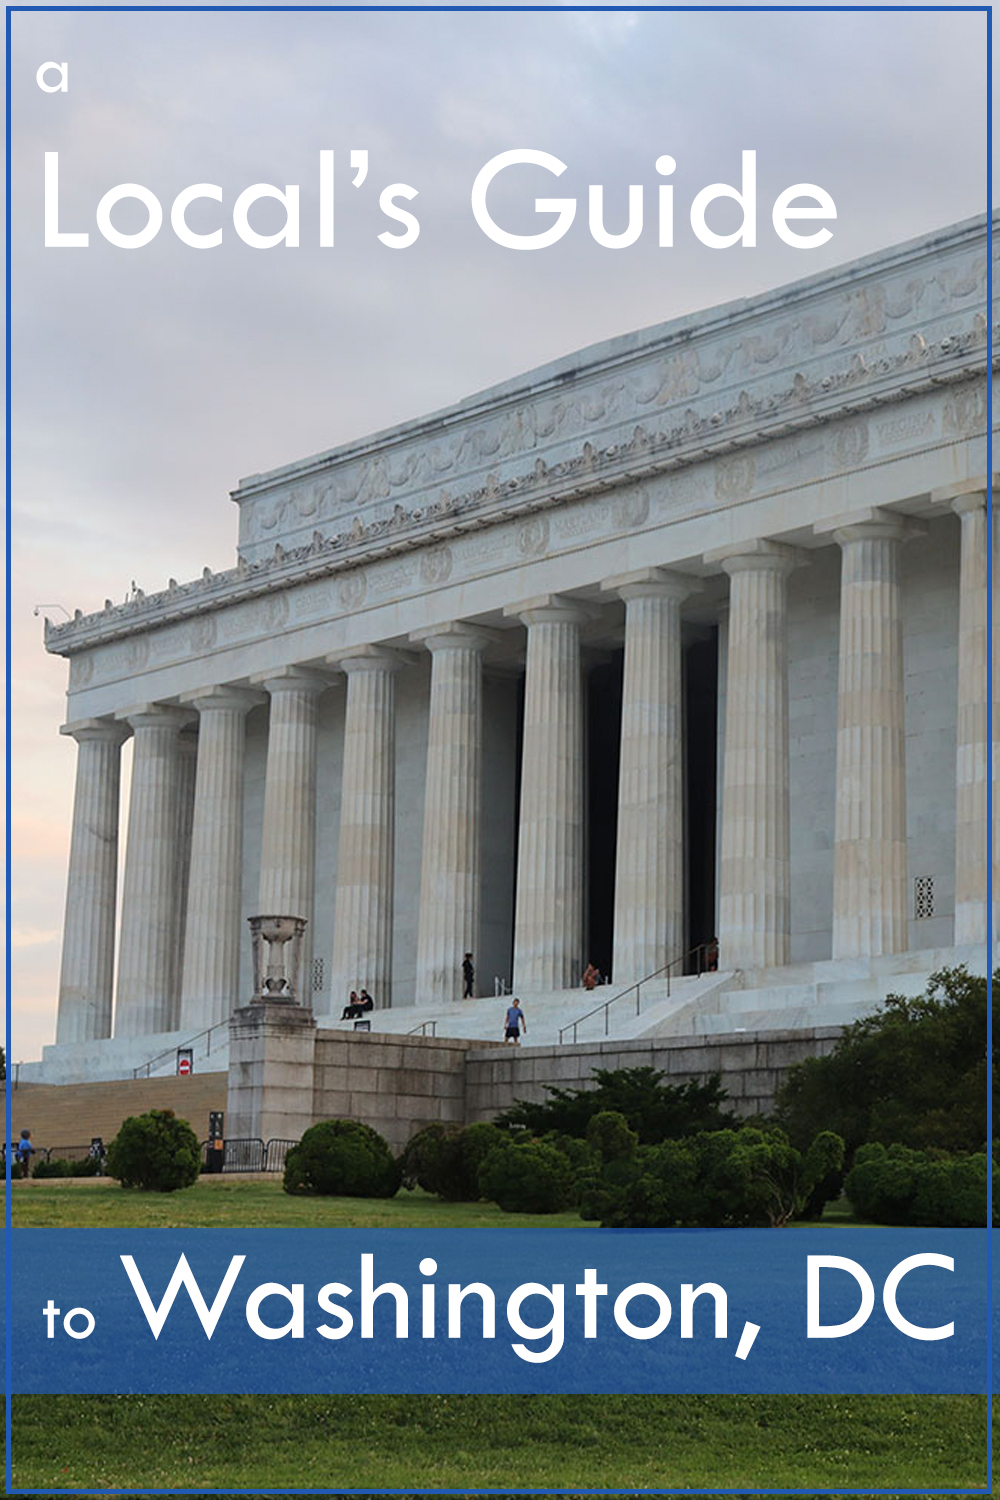 A Local's Guide to Washington, DC